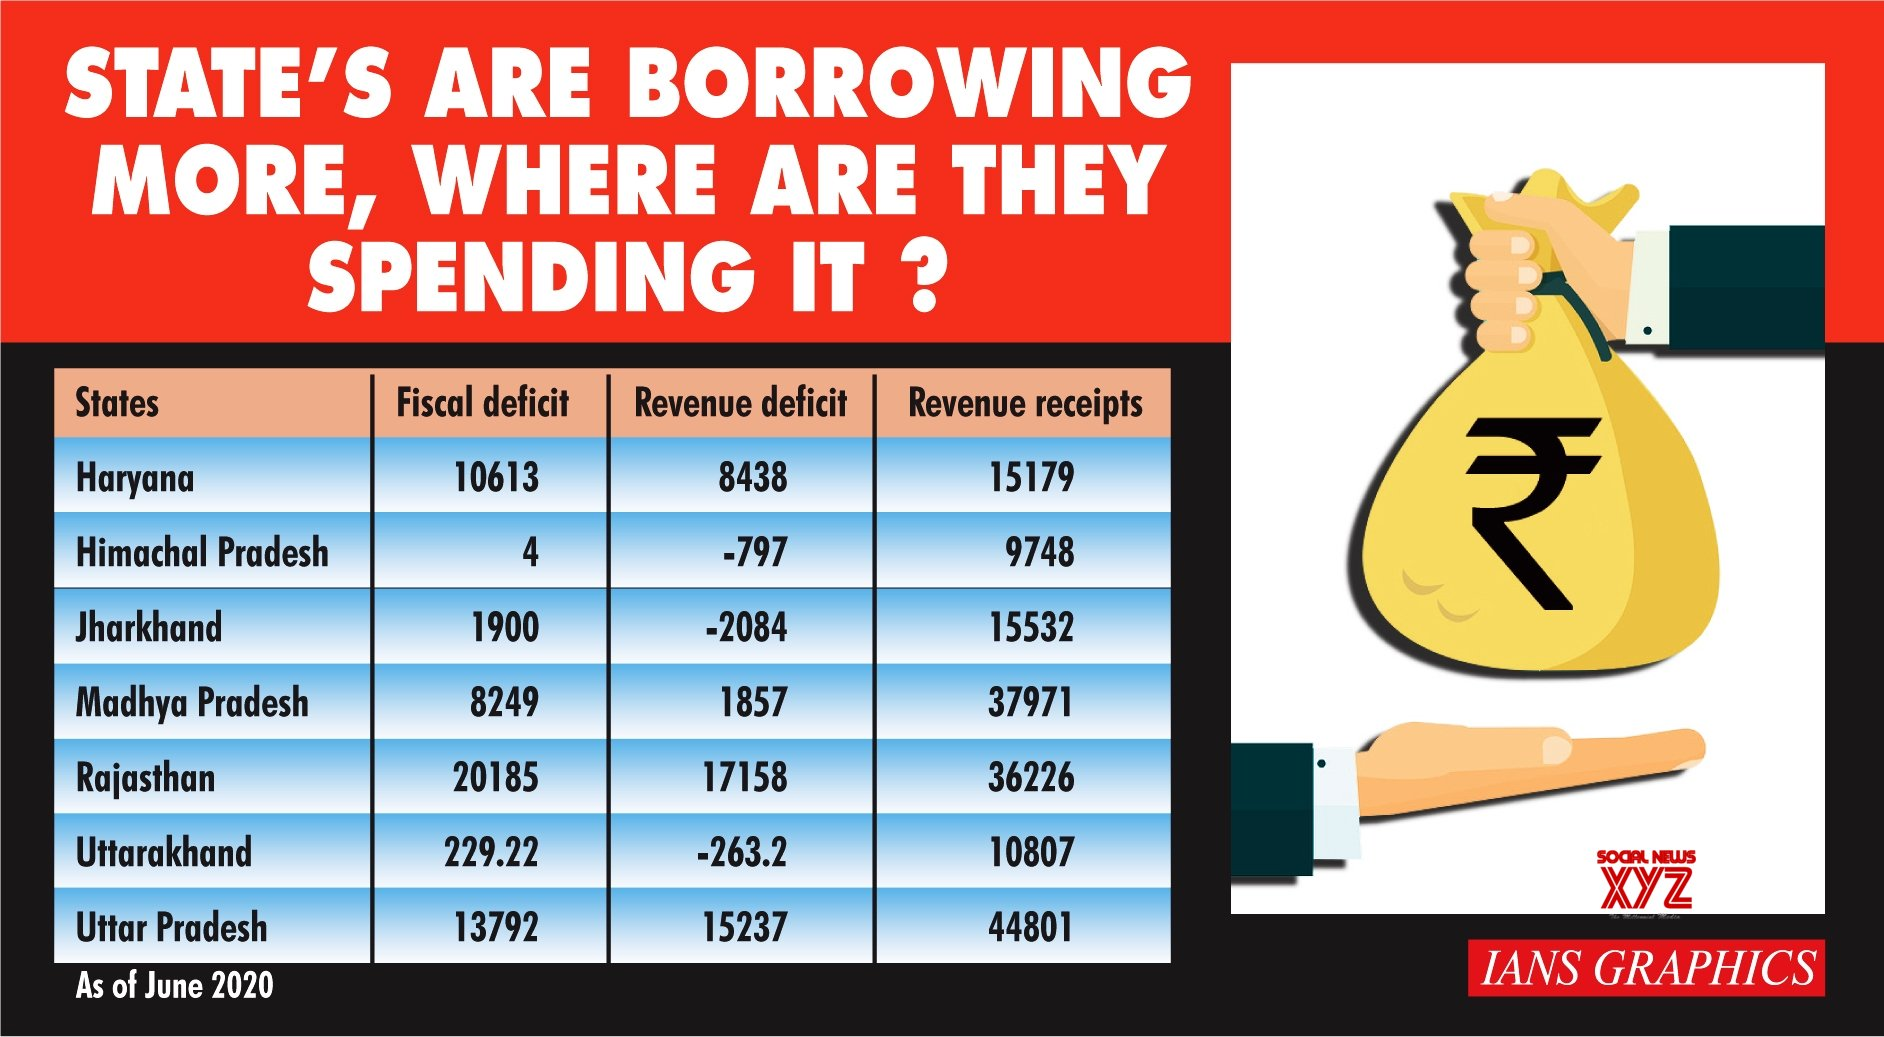 Expenditure matters more than borrowing